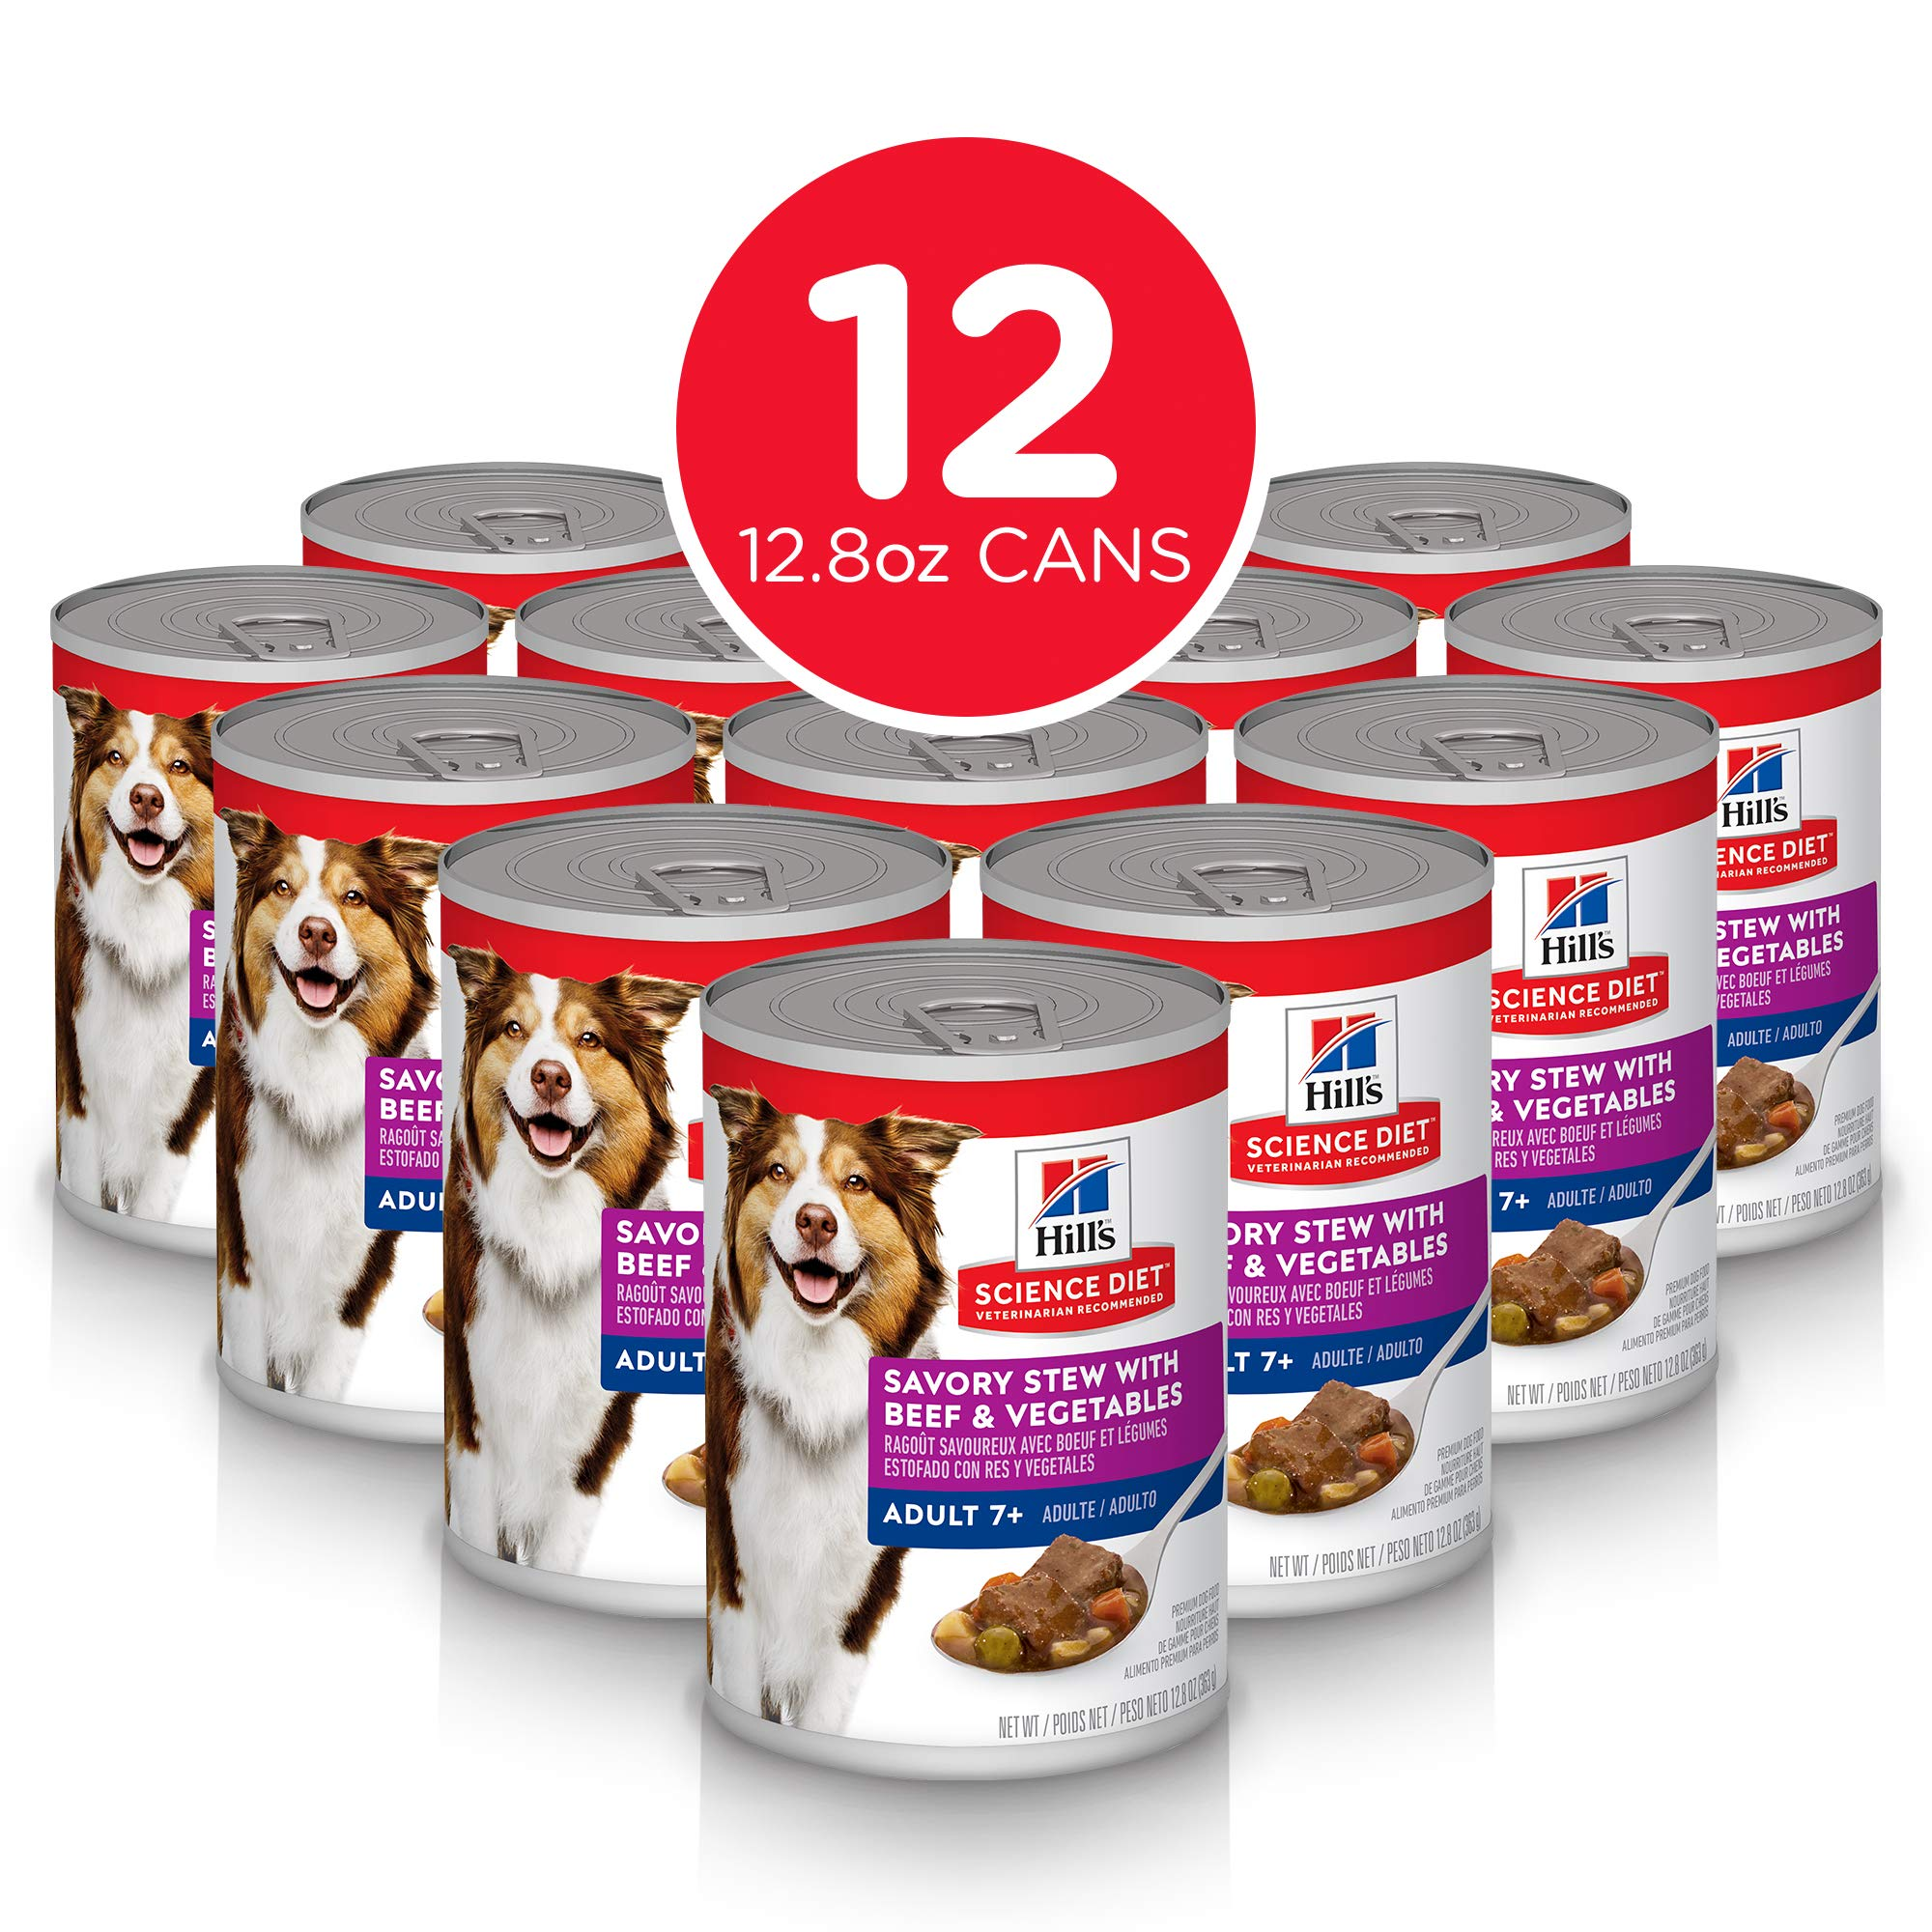 Hill's Science Diet Canned Dog Food, Adult 7+, Savory Stew with Beef & Vegetables, 12.8 oz, 12 Pack by Hill's Science Diet